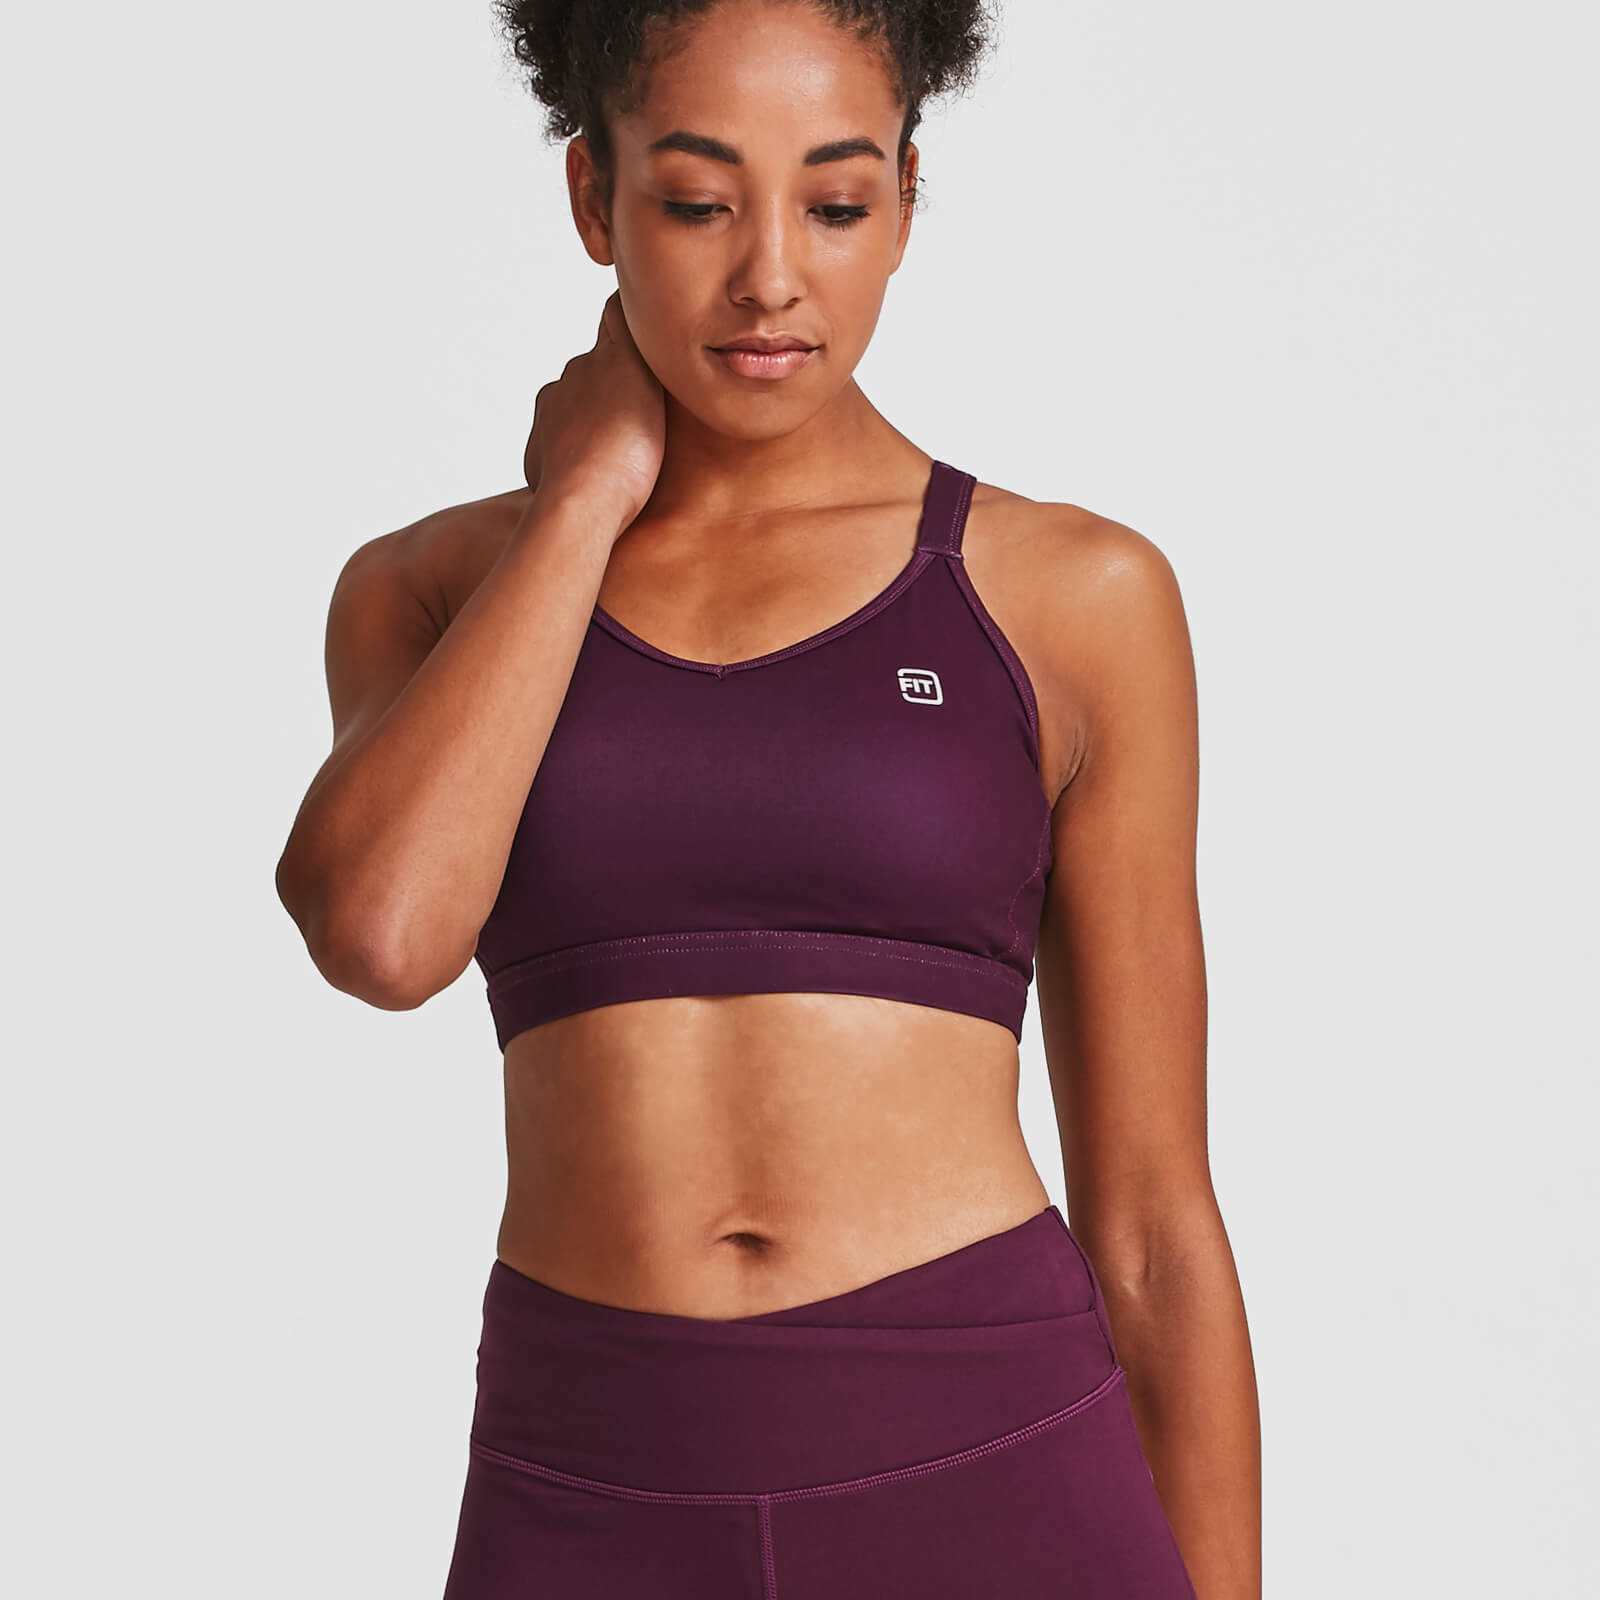 IdealFit Core Sports Bra - Dark Berry